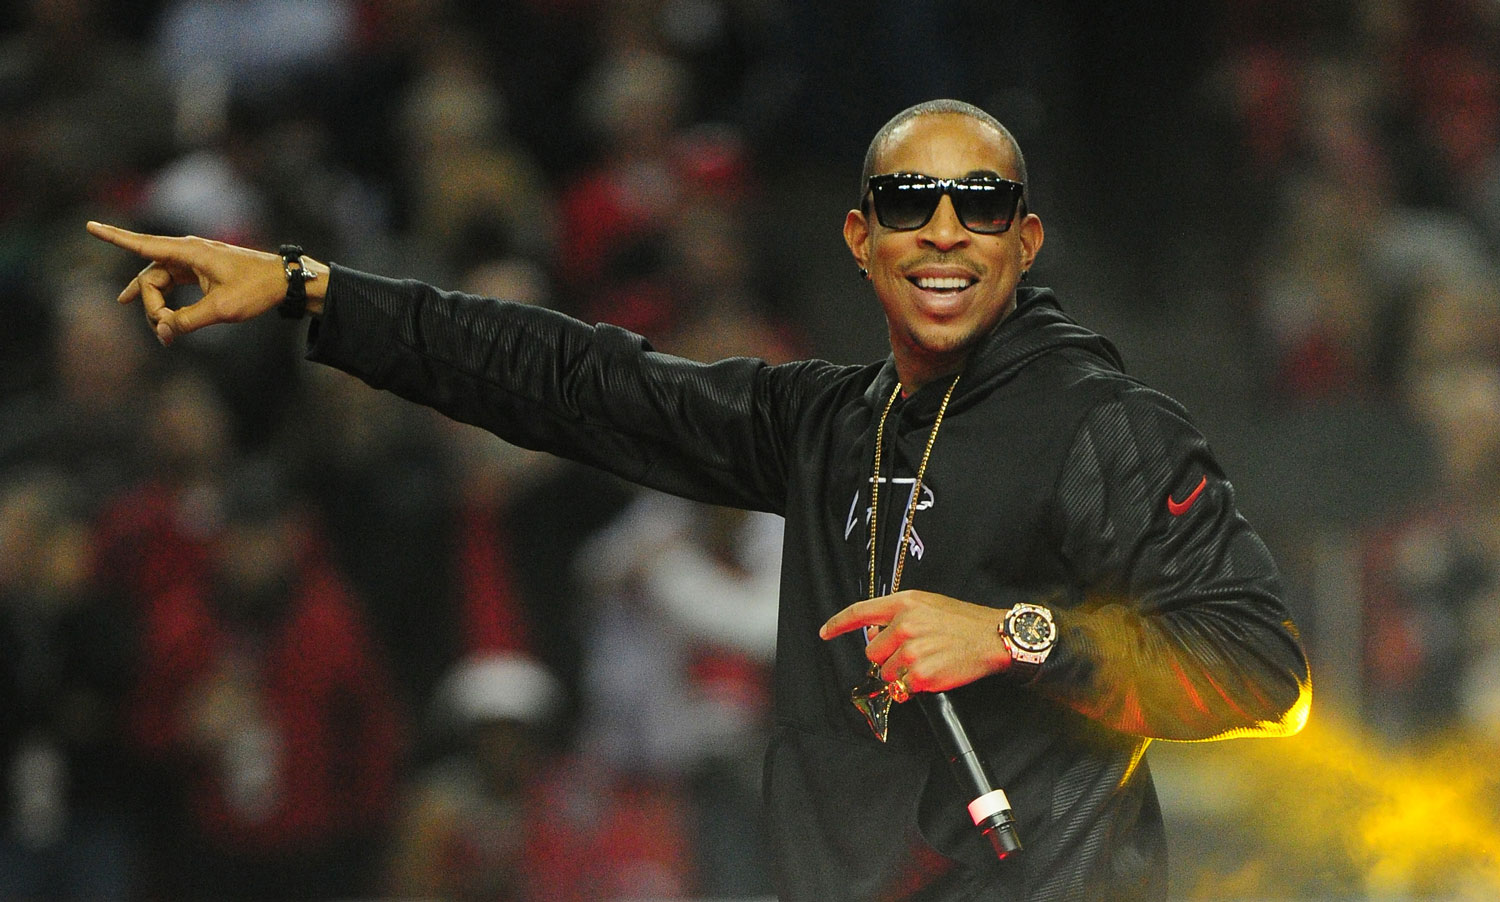 Ludacris Atlanta Falcons